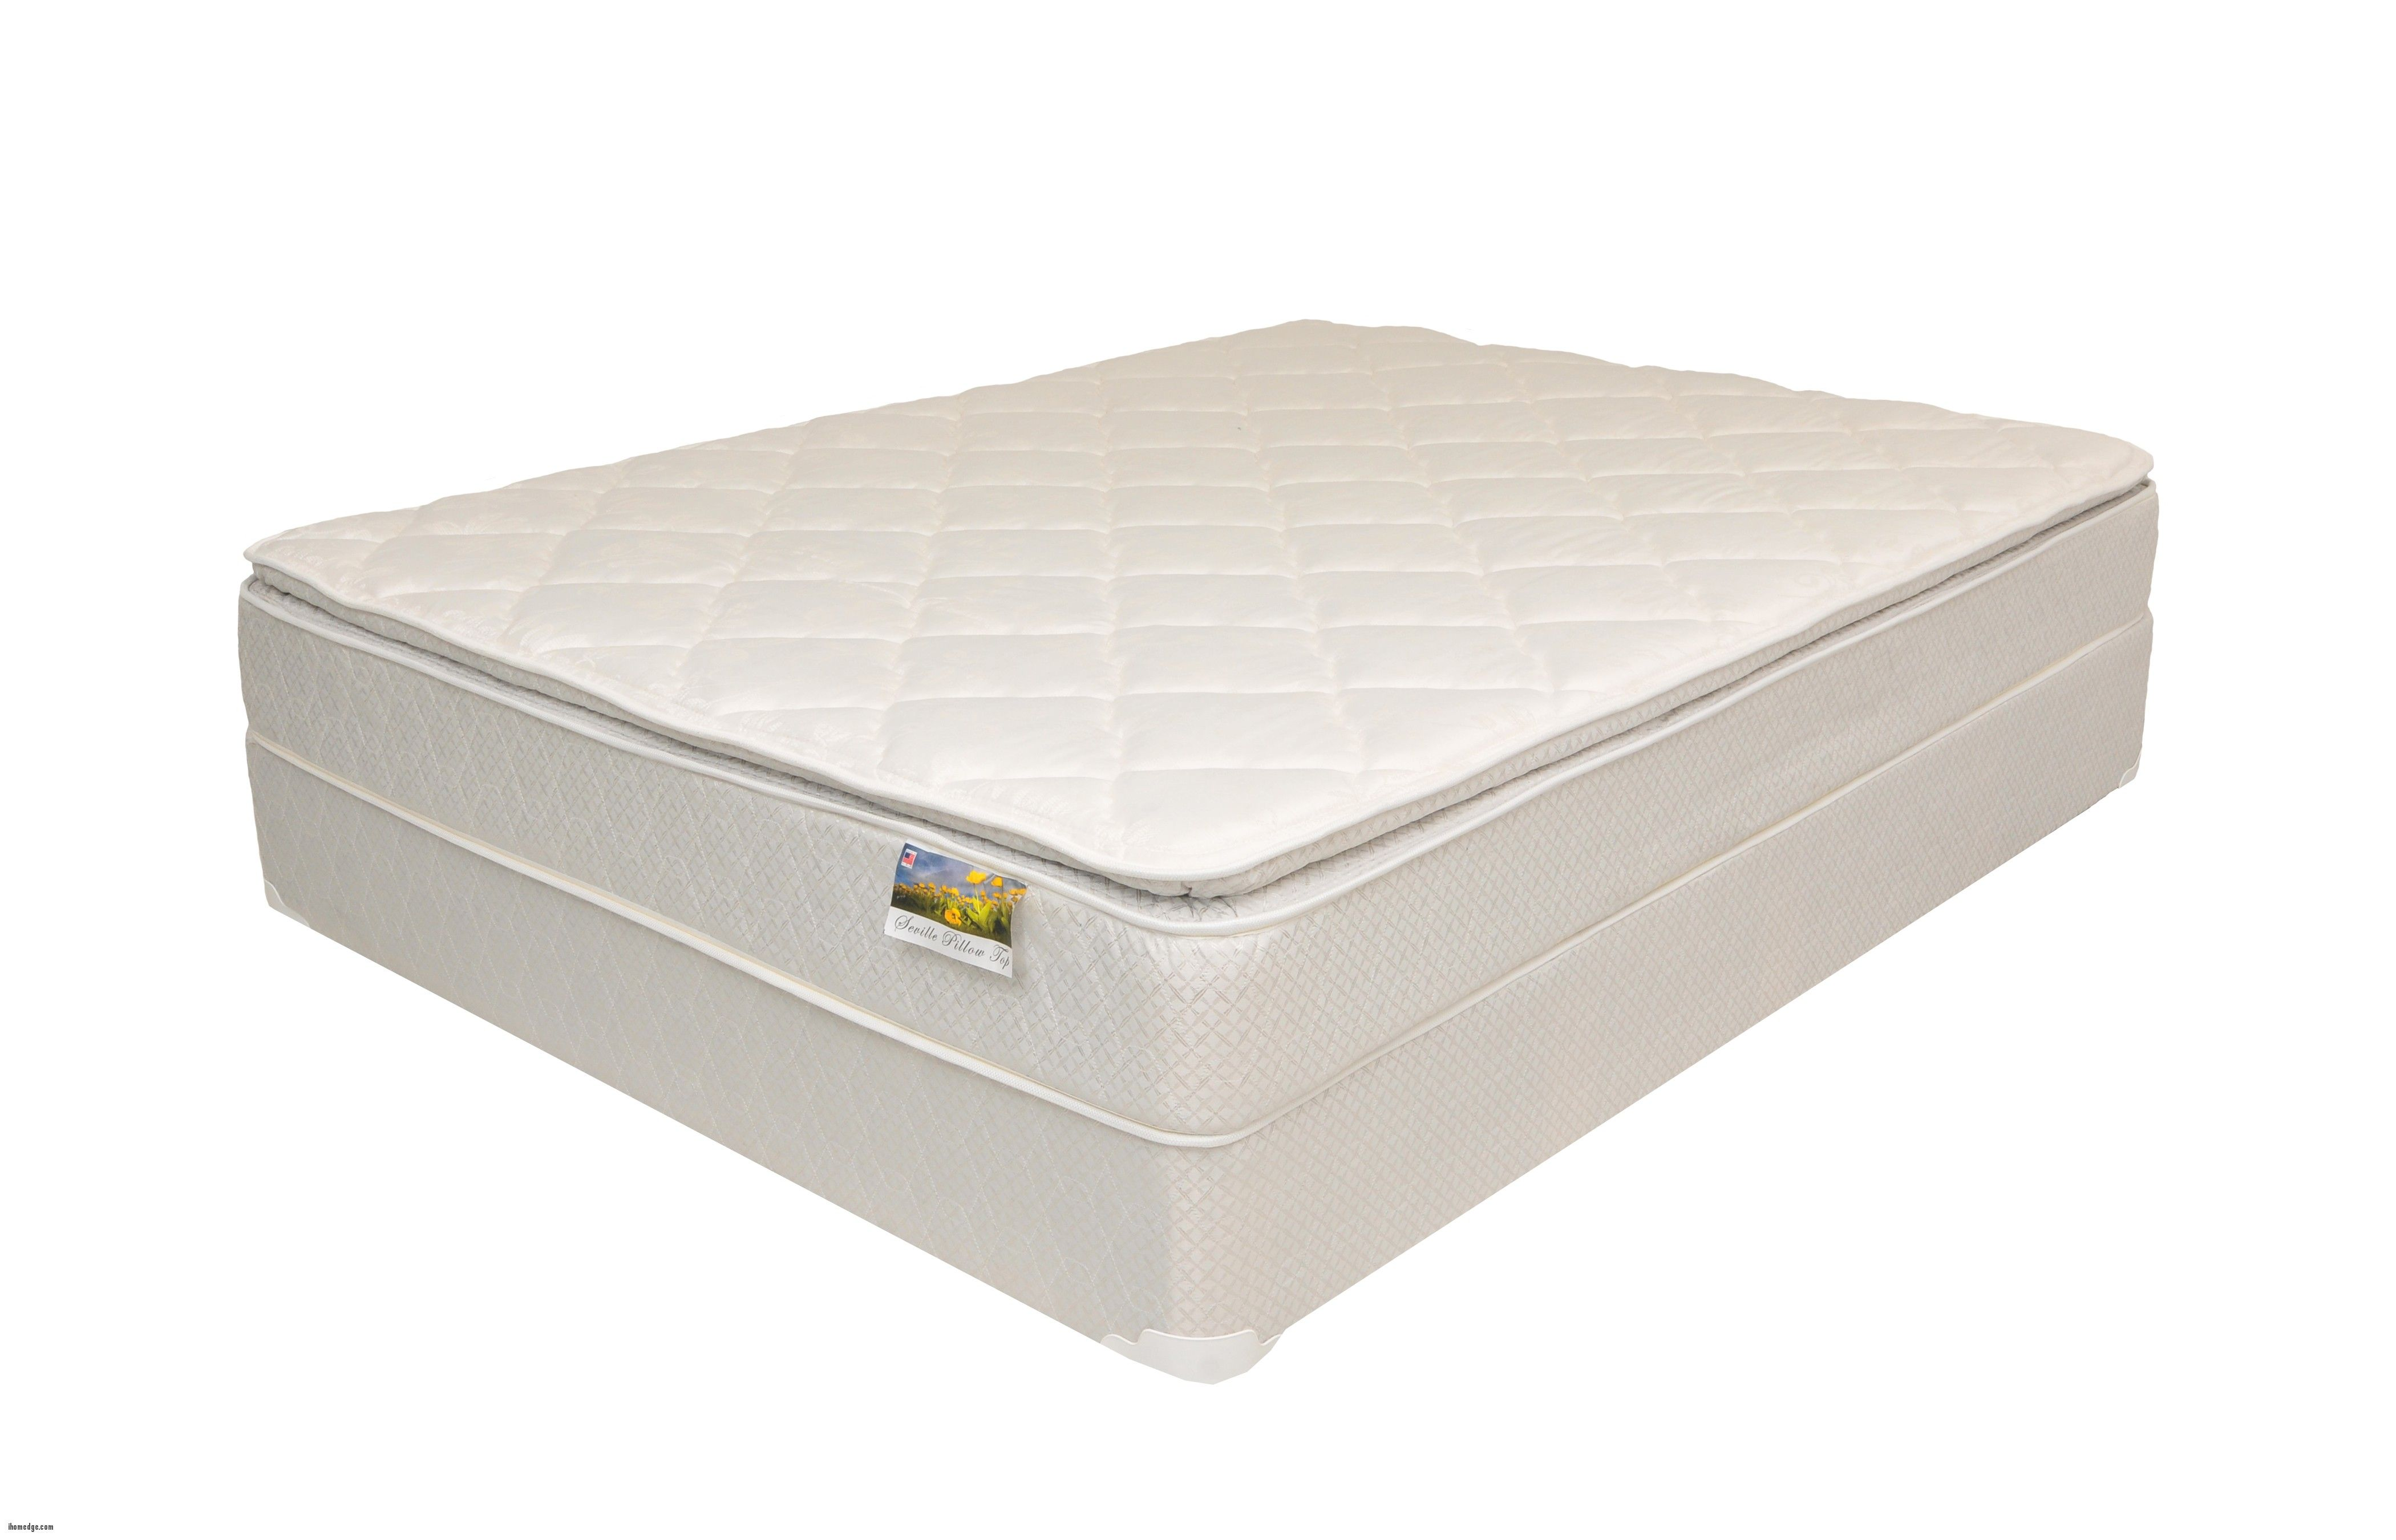 spring reviews frame firm size inspirational for black deals set beds friday comfy vera best sizes mainstays wang sleep queen full king dealzz daybed what mattresses stores comfort most euro whats walmart comfortable box sale twin top mattress coil multiple is good